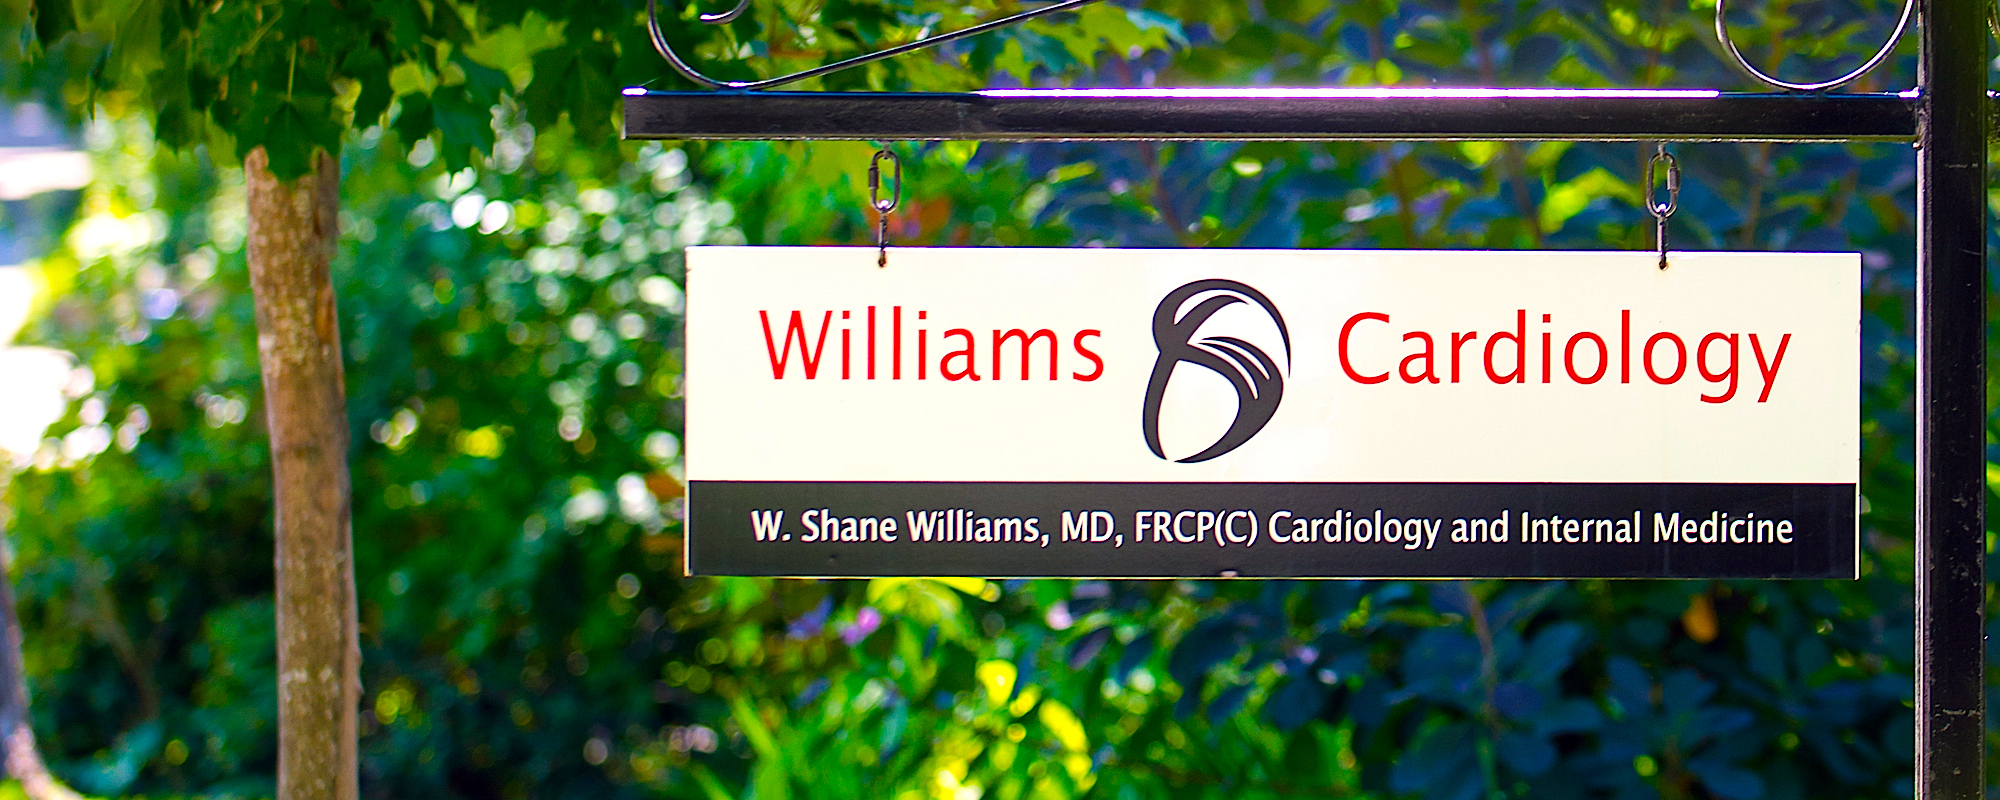 Dr. W. Shane Williams, Cardiologist